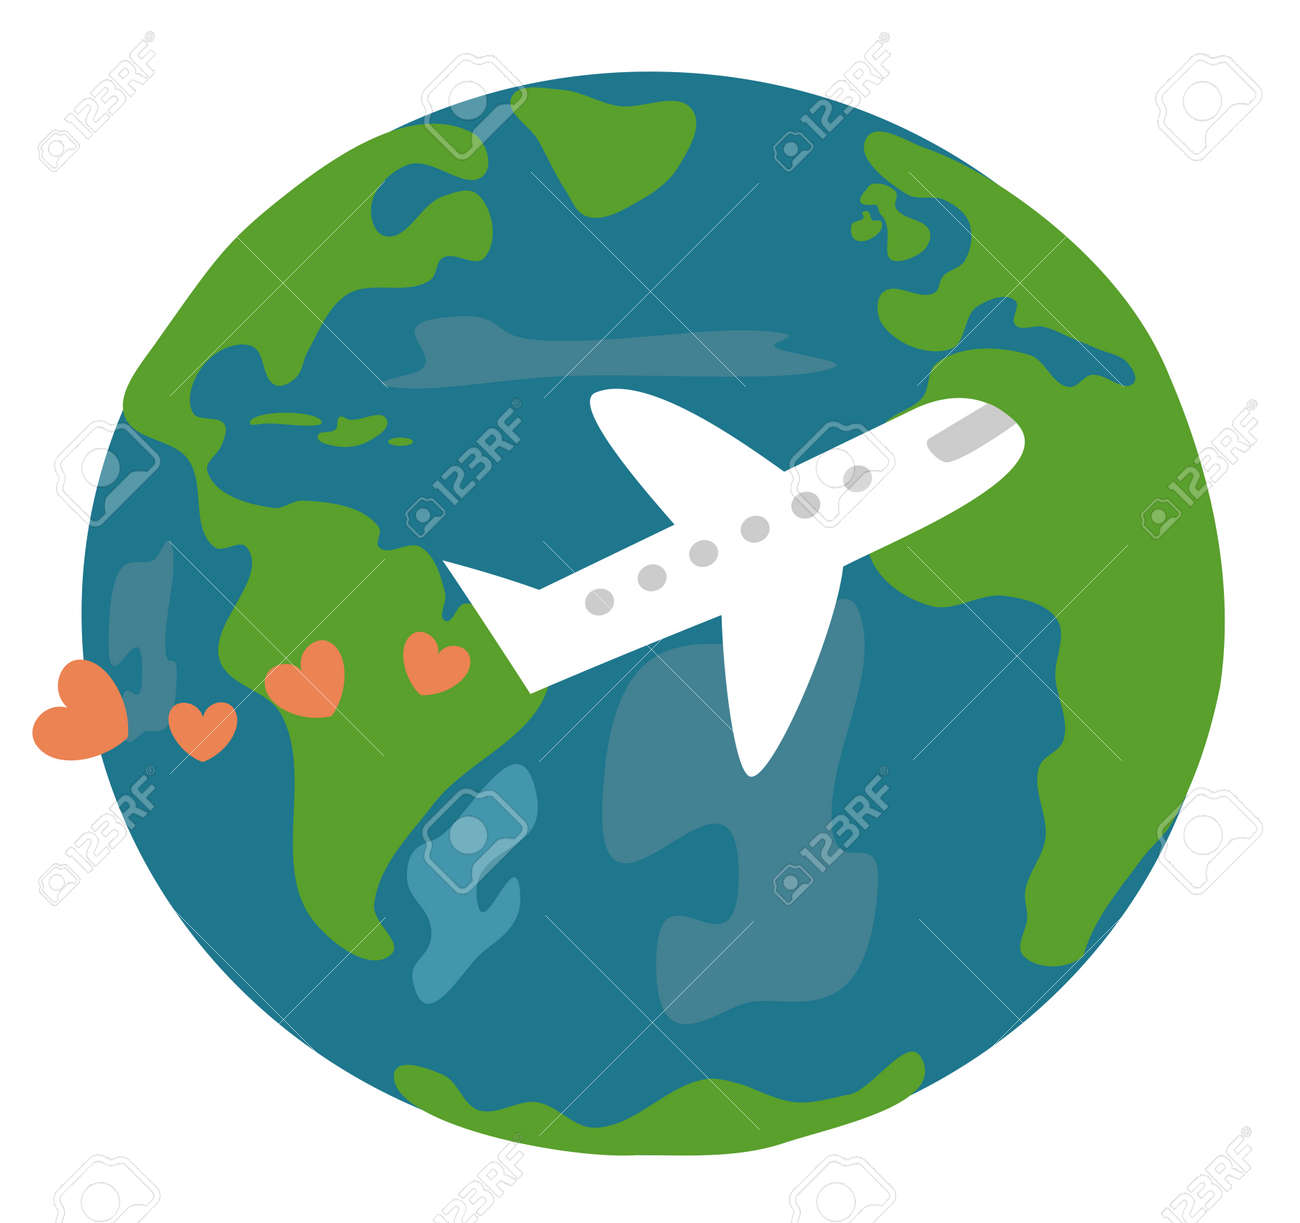 Cute Cartoon Earth And Plane With Hearts Love Travel The World Vector Concept Illustration Stock